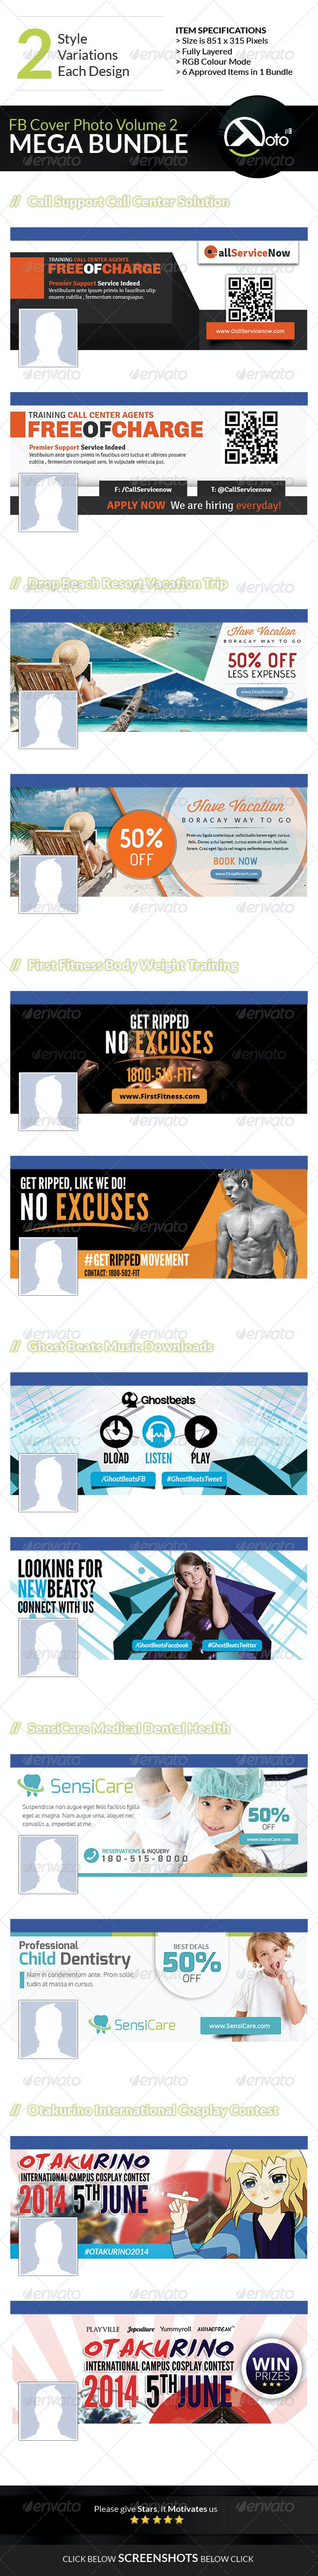 6 in 1 Mix FB Banners Vol 2 - Banners & Ads Web Elements